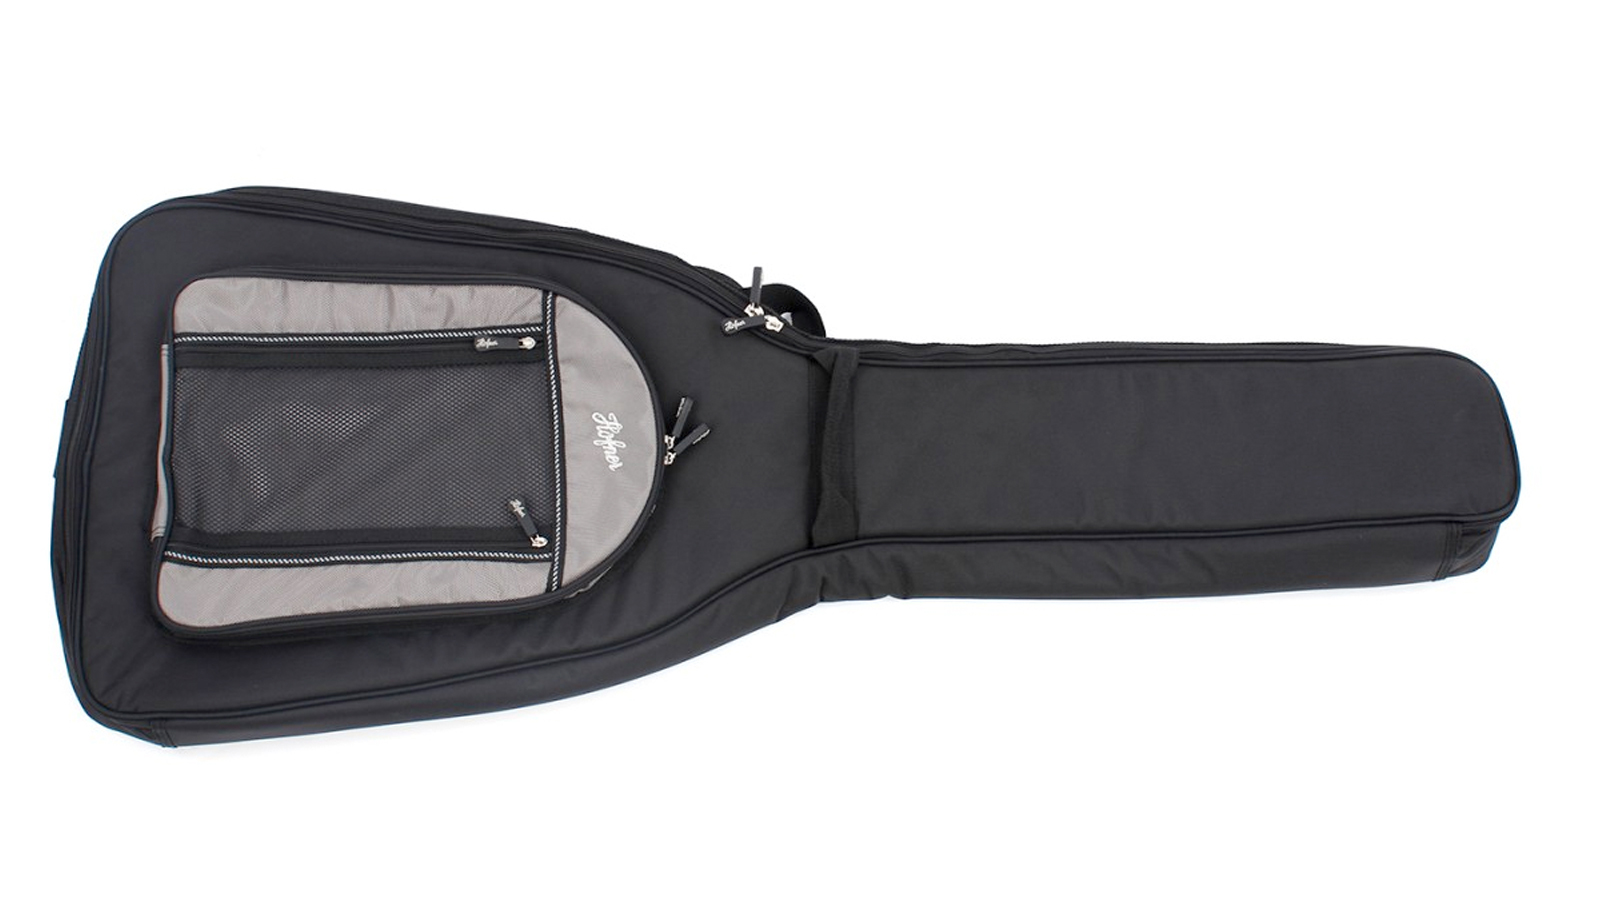 Höfner H61/22-Bk Verythin Premium Gigbag Black